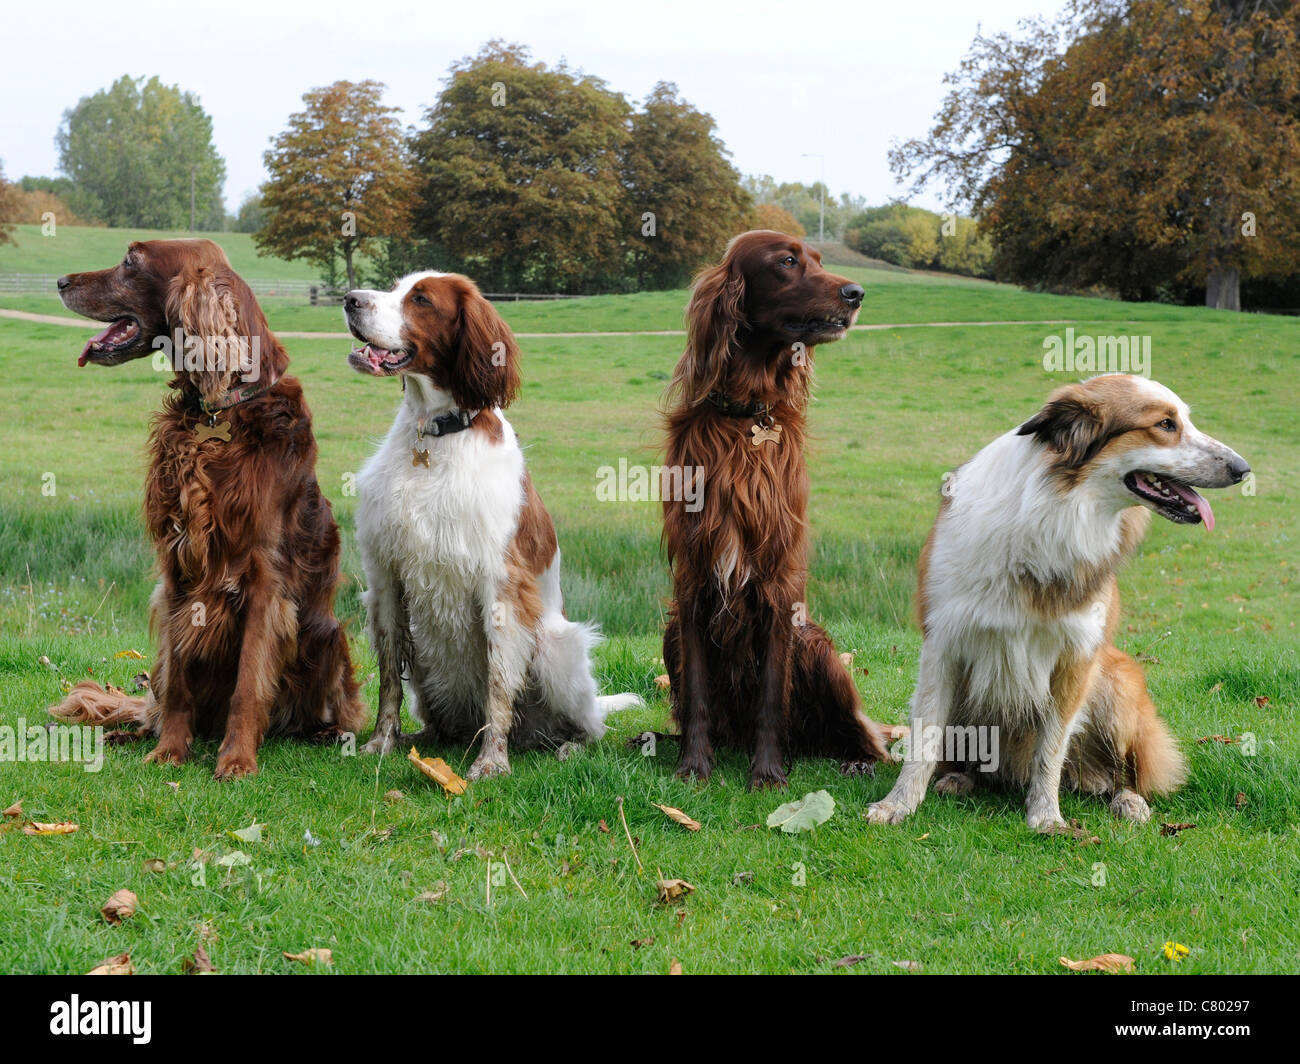 A group of dogs that are not obedient and are looking in different directions Stock Photo